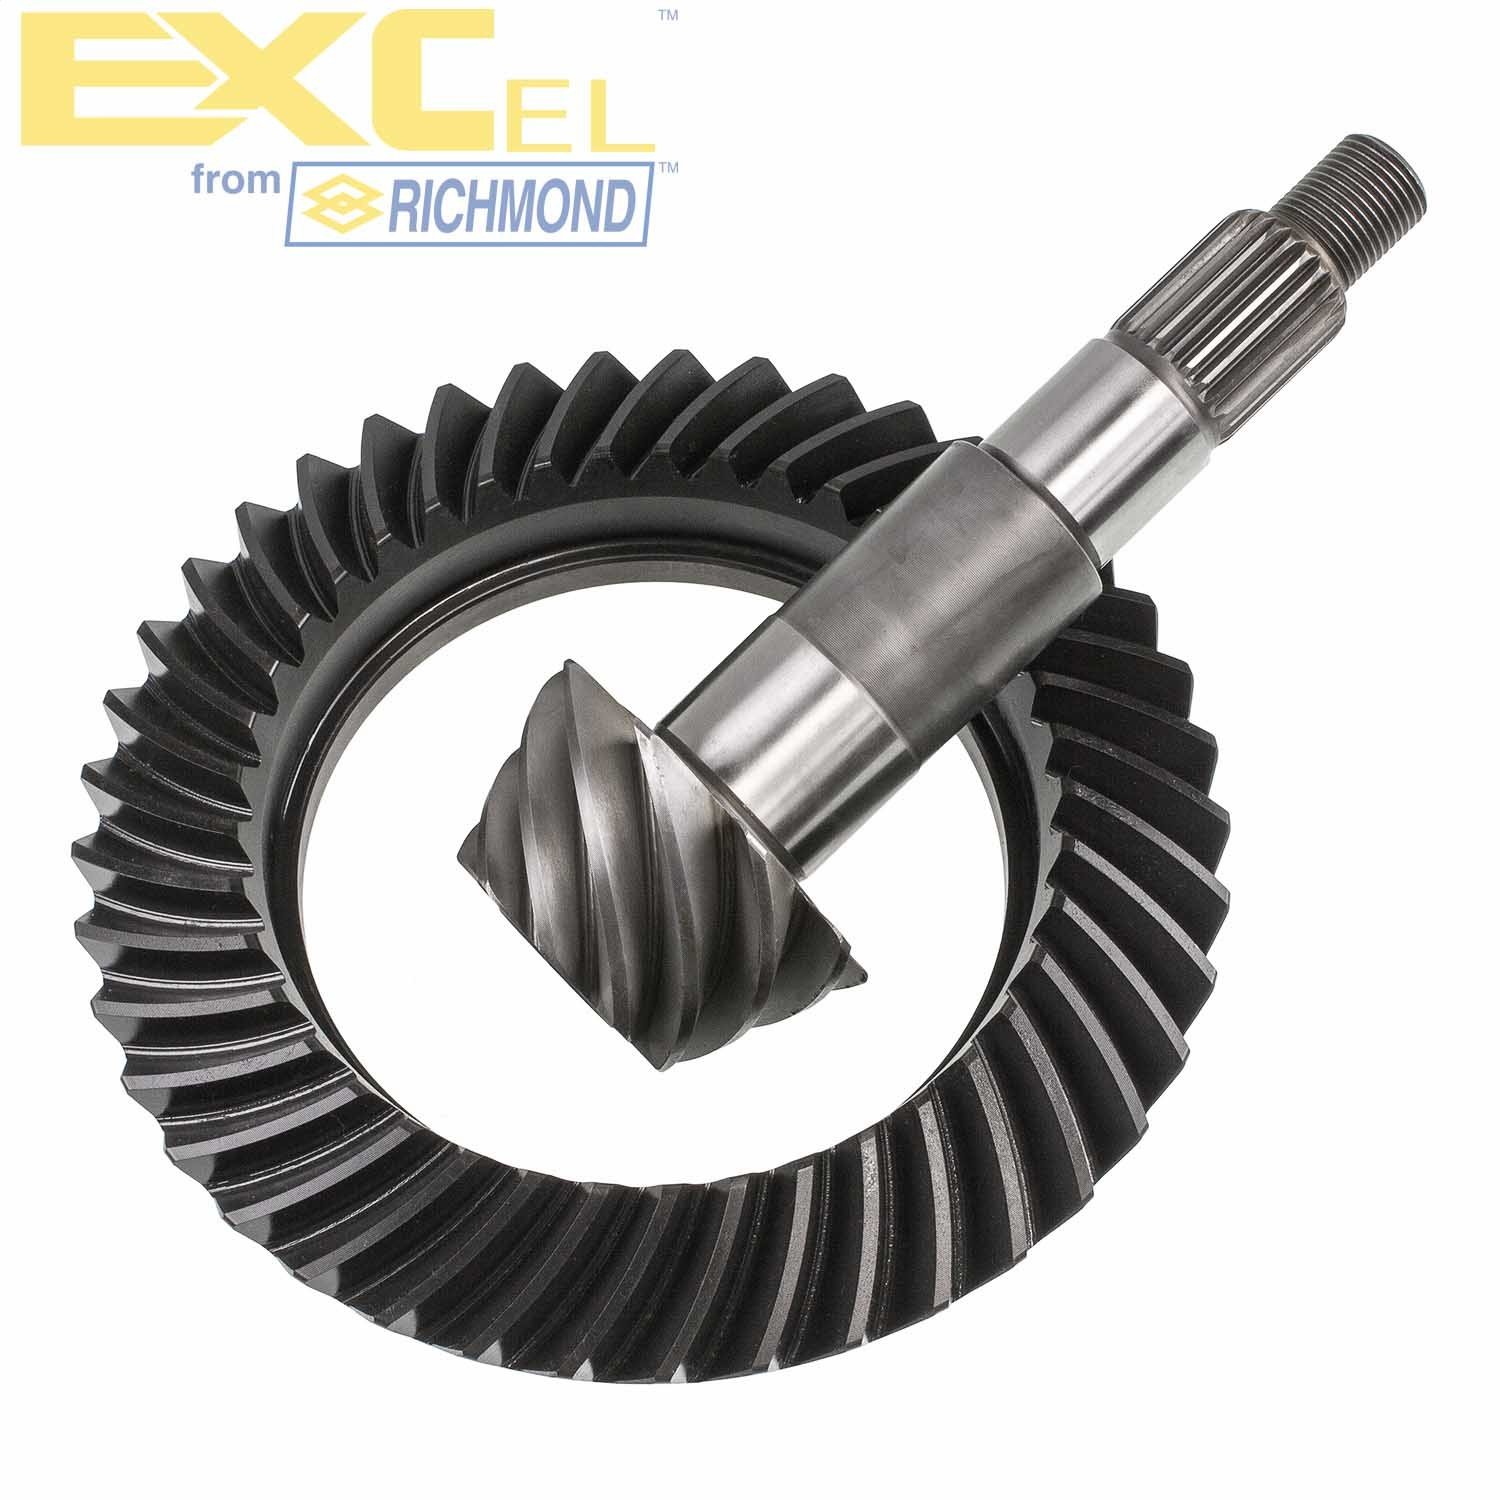 EXCEL from Richmond D44456JK Differential Ring And Pinion Fits Wrangler (JK)